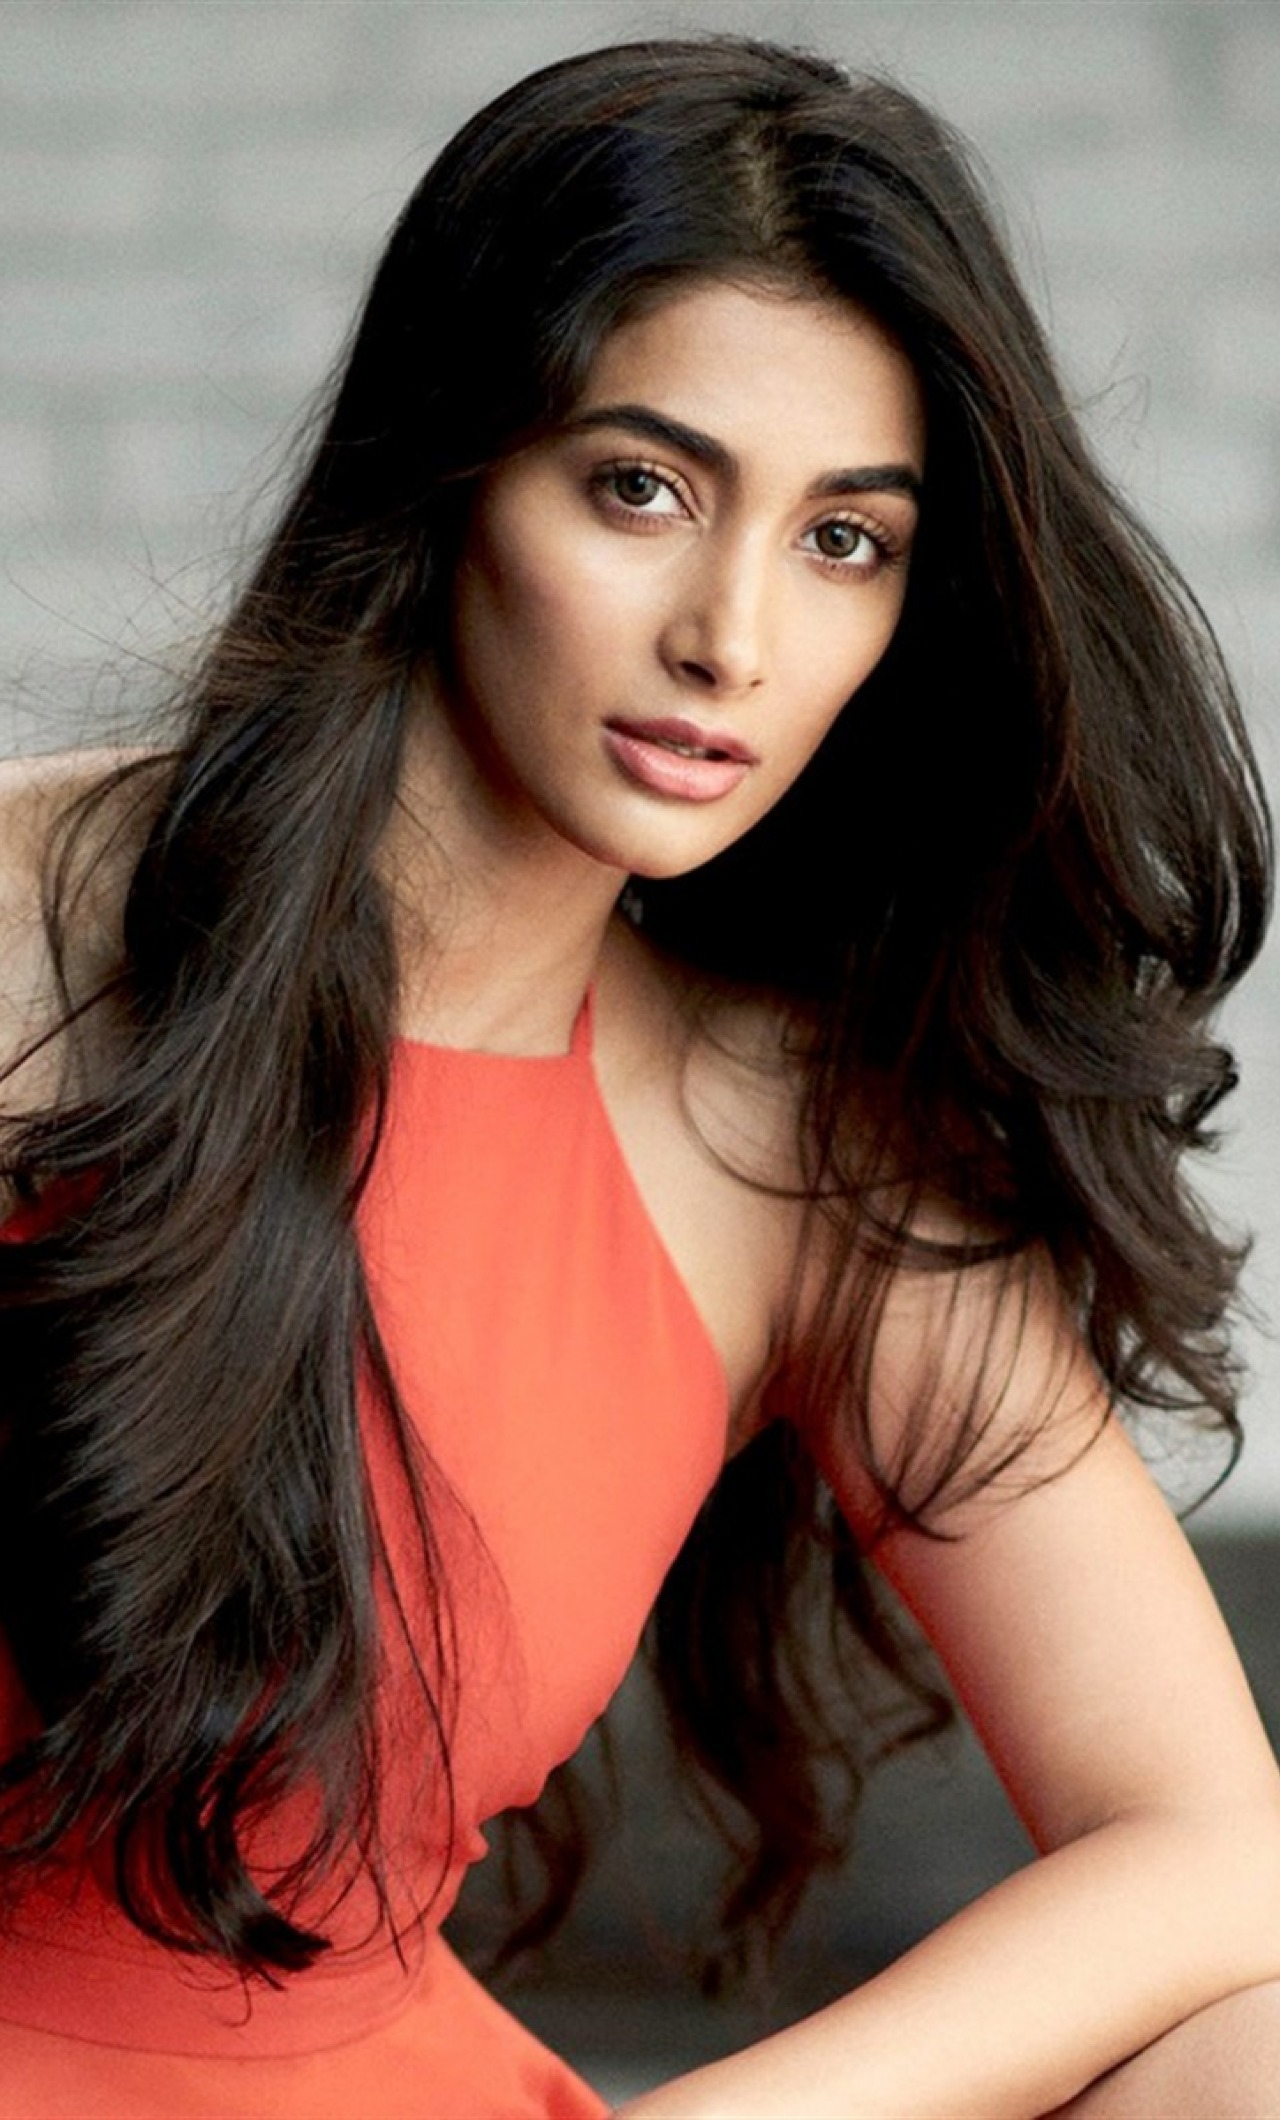 download hot pooja hegde in red 540x960 resolution, full hd wallpaper